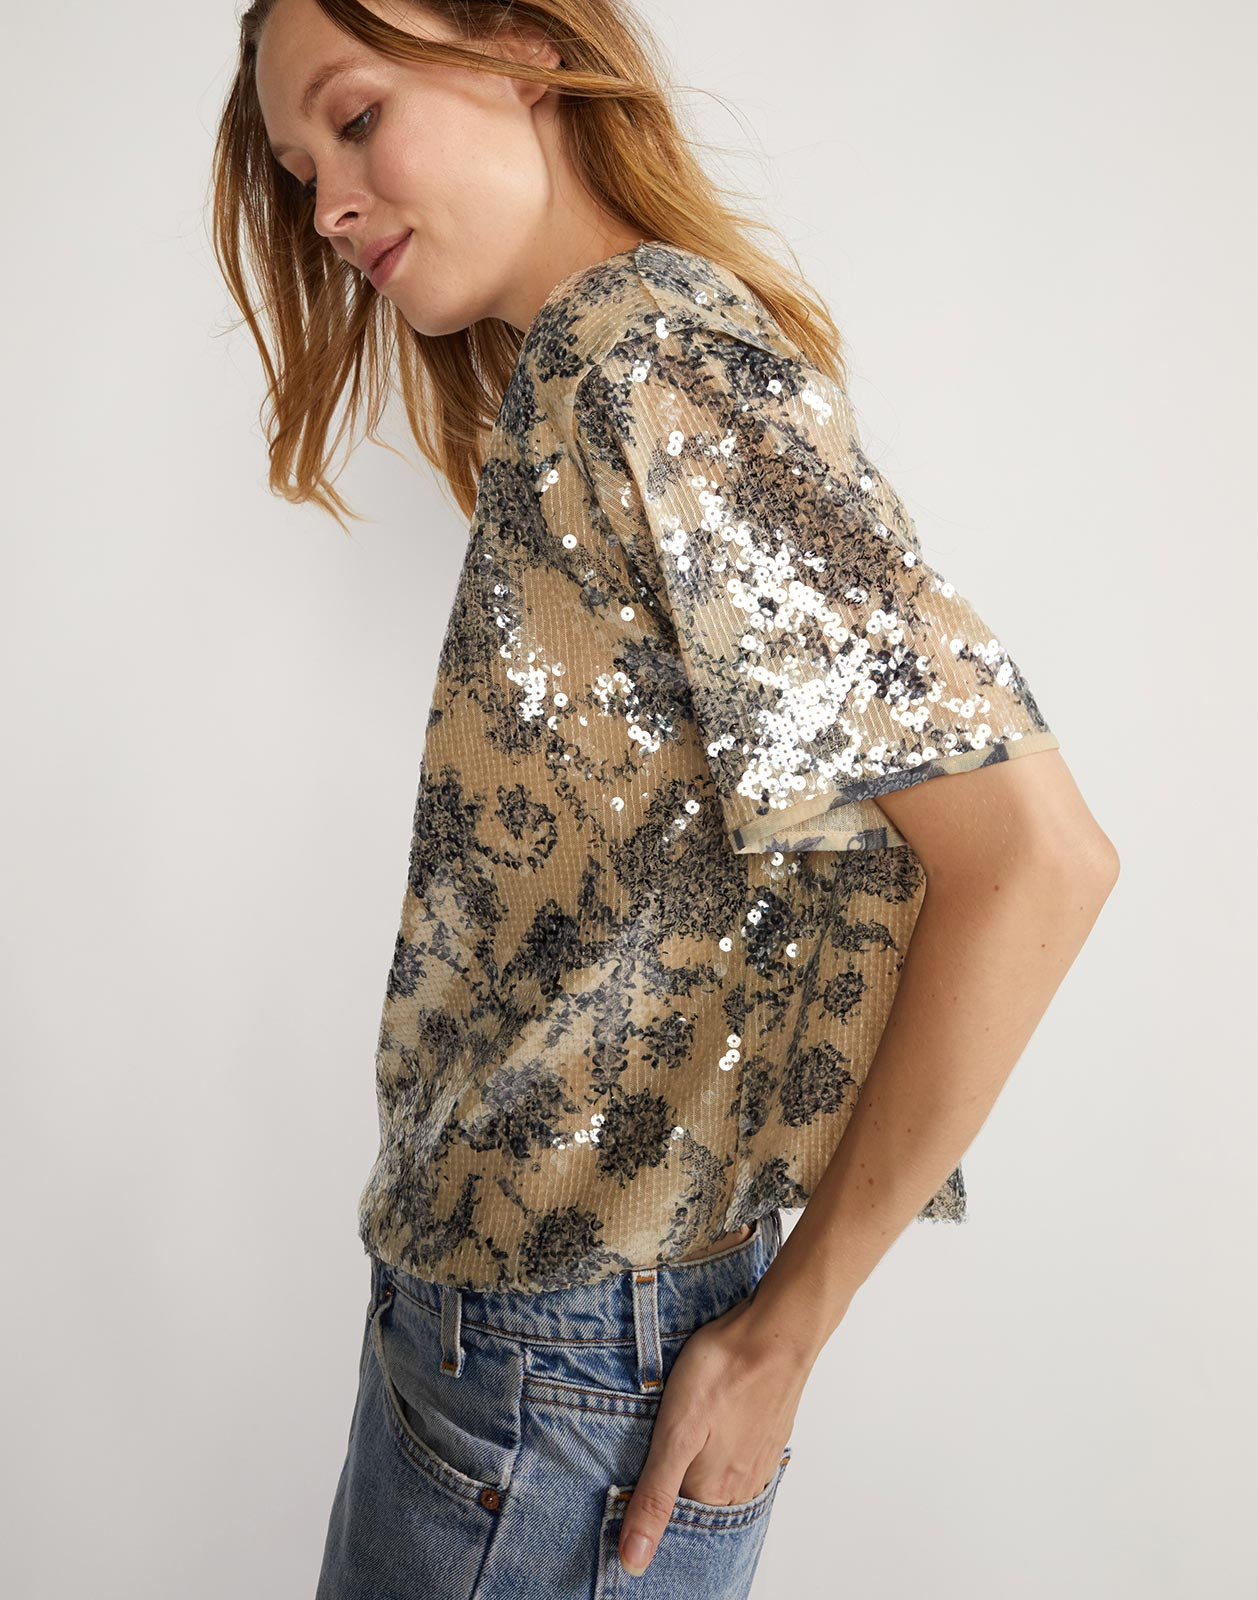 Side view of short sleeved floral shirt